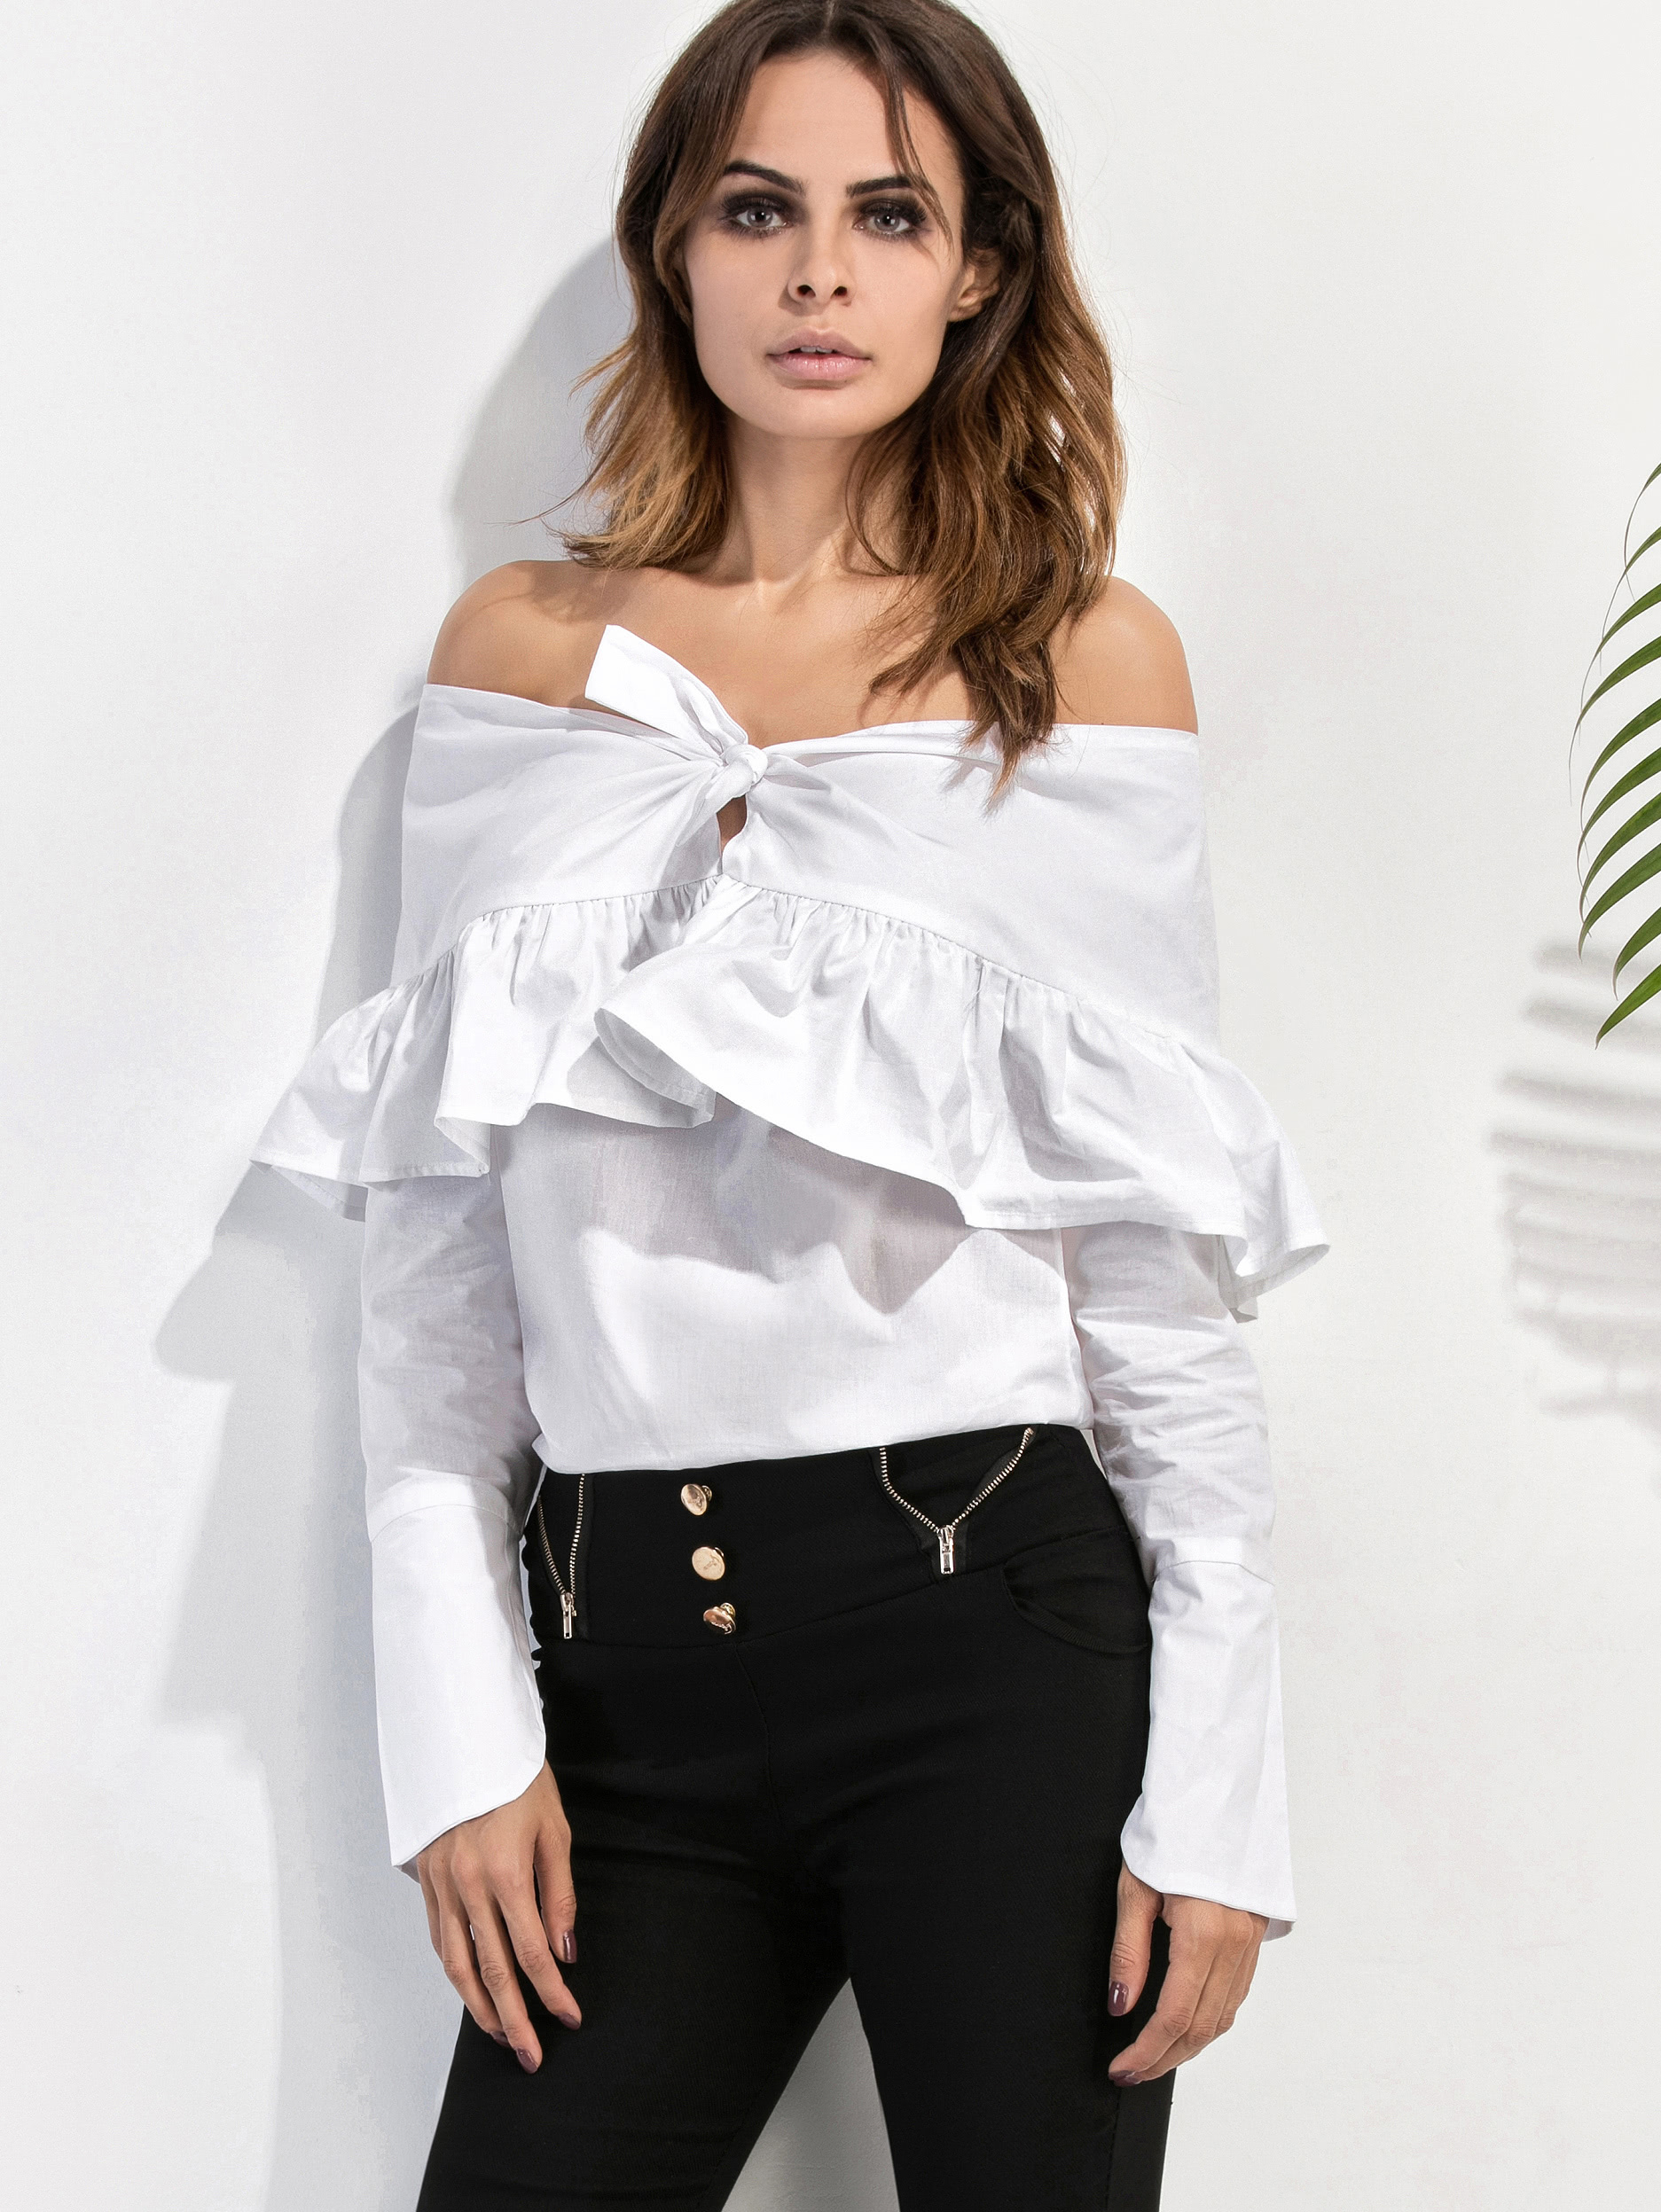 White Off The Shoulder Ruffle TopWhite Off The Shoulder Ruffle Top<br><br>color: White<br>size: L,M,S,XL